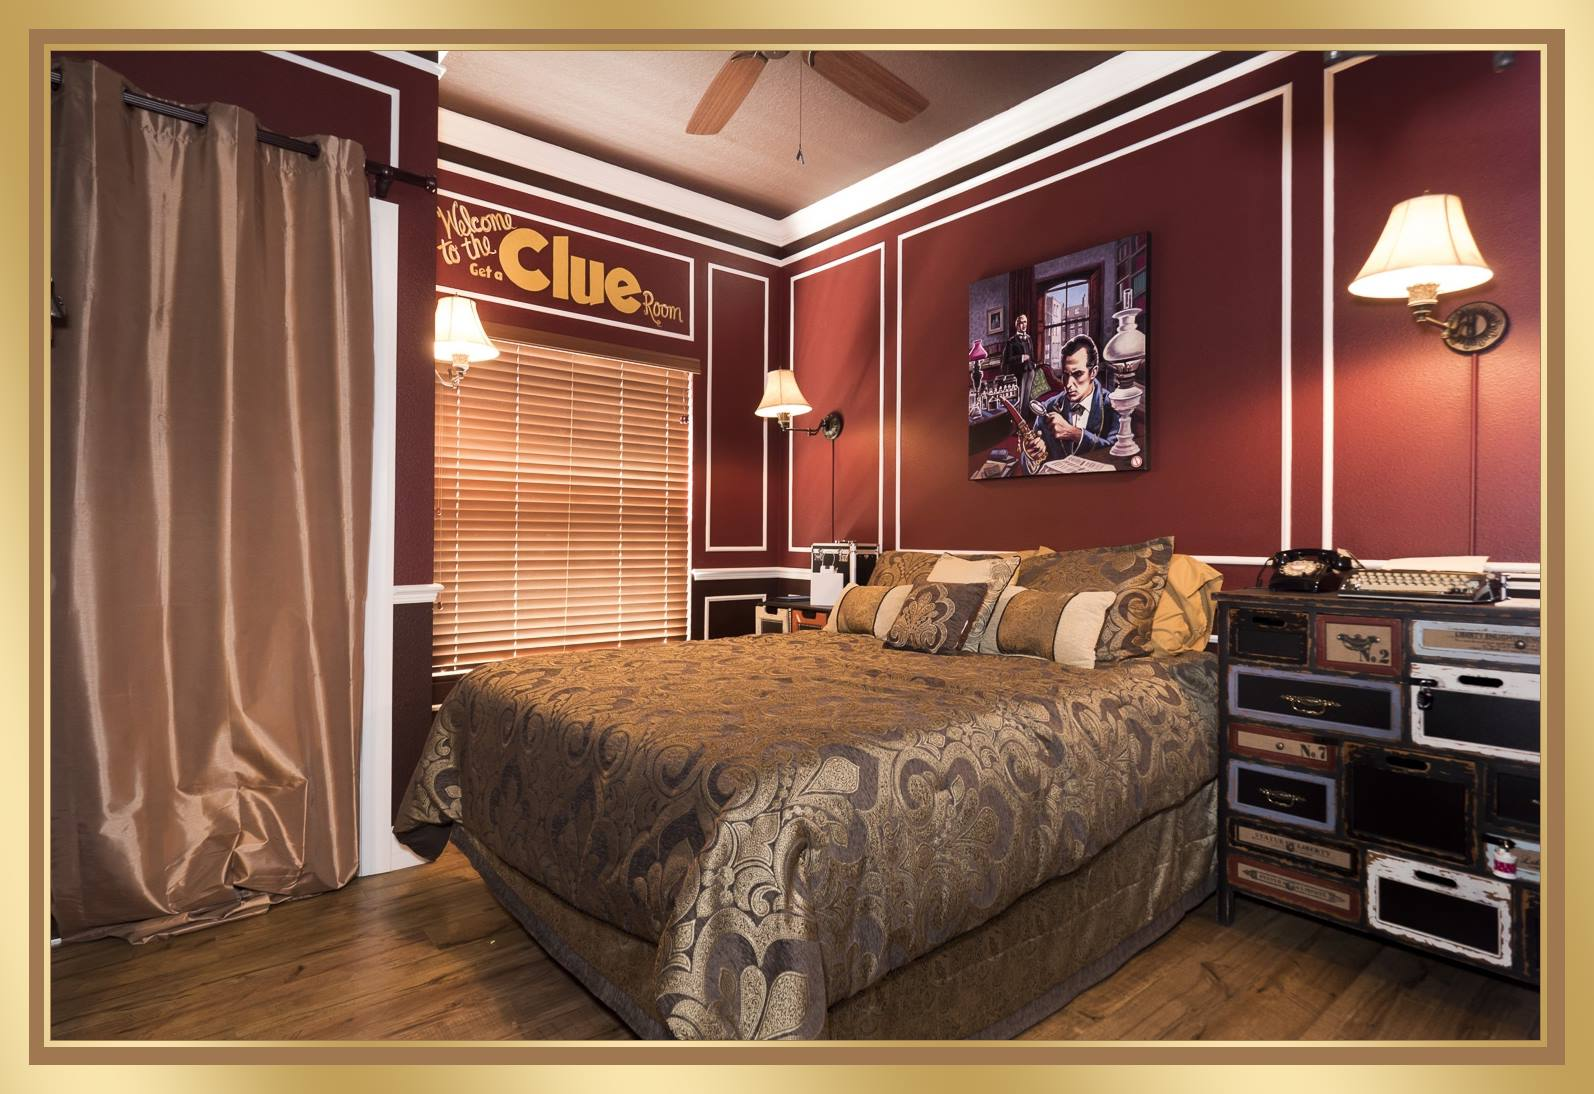 The Quot Get A Clue Quot Escape Room Game Amp Bedroom At The Great